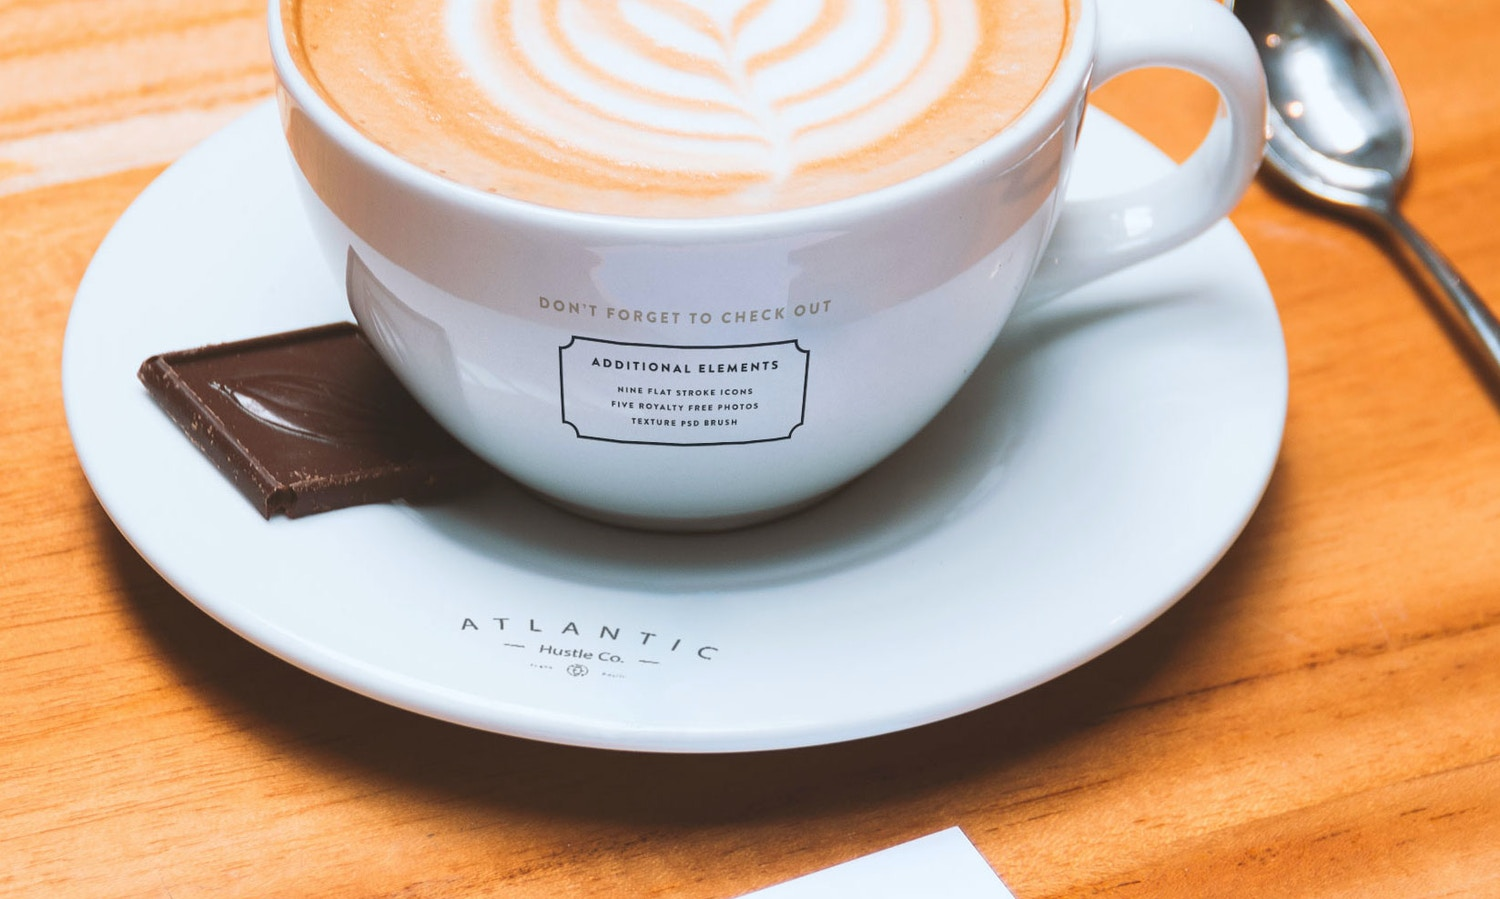 Business Cards and Coffee Cup Mockup